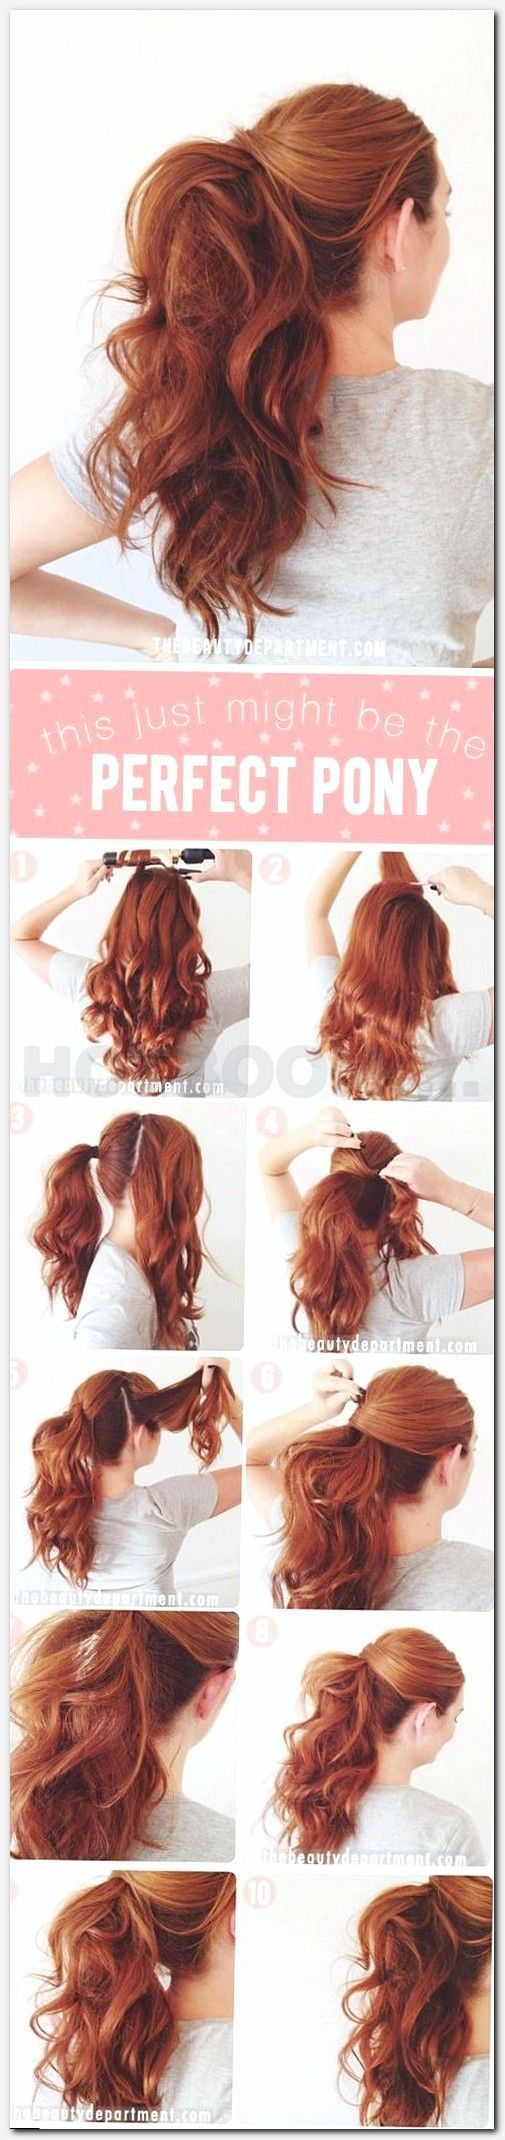 How often do men get haircuts hairstyles lucy haleus vma ponytail  long hairstyle  pinterest